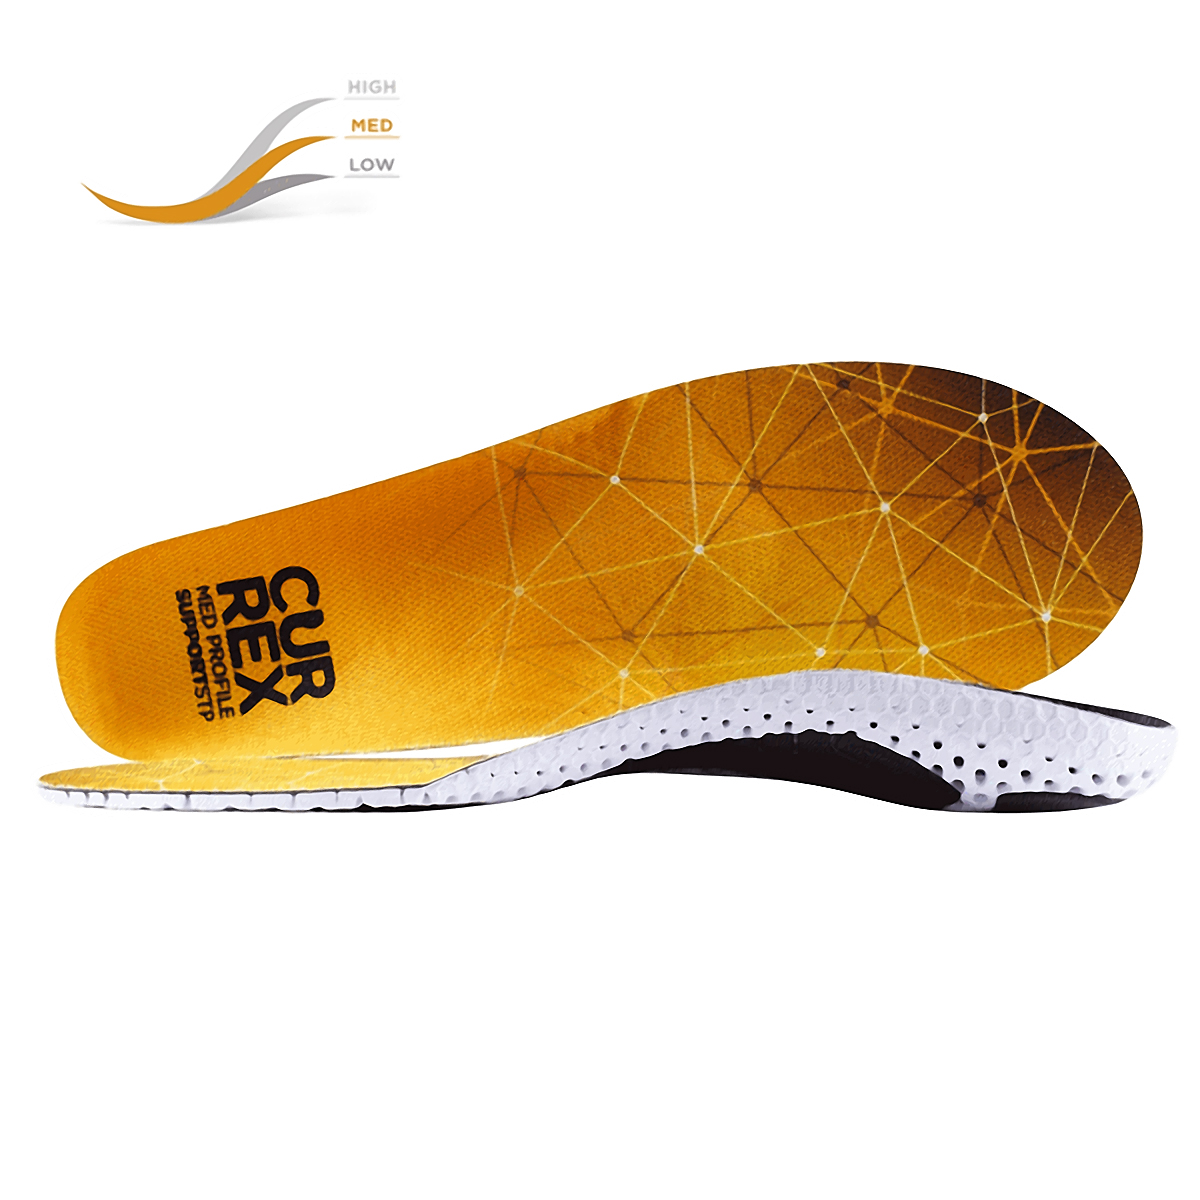 Currex Insole SupportSTP Medium Profile - Color: Orange Size: XS, Orange, large, image 1